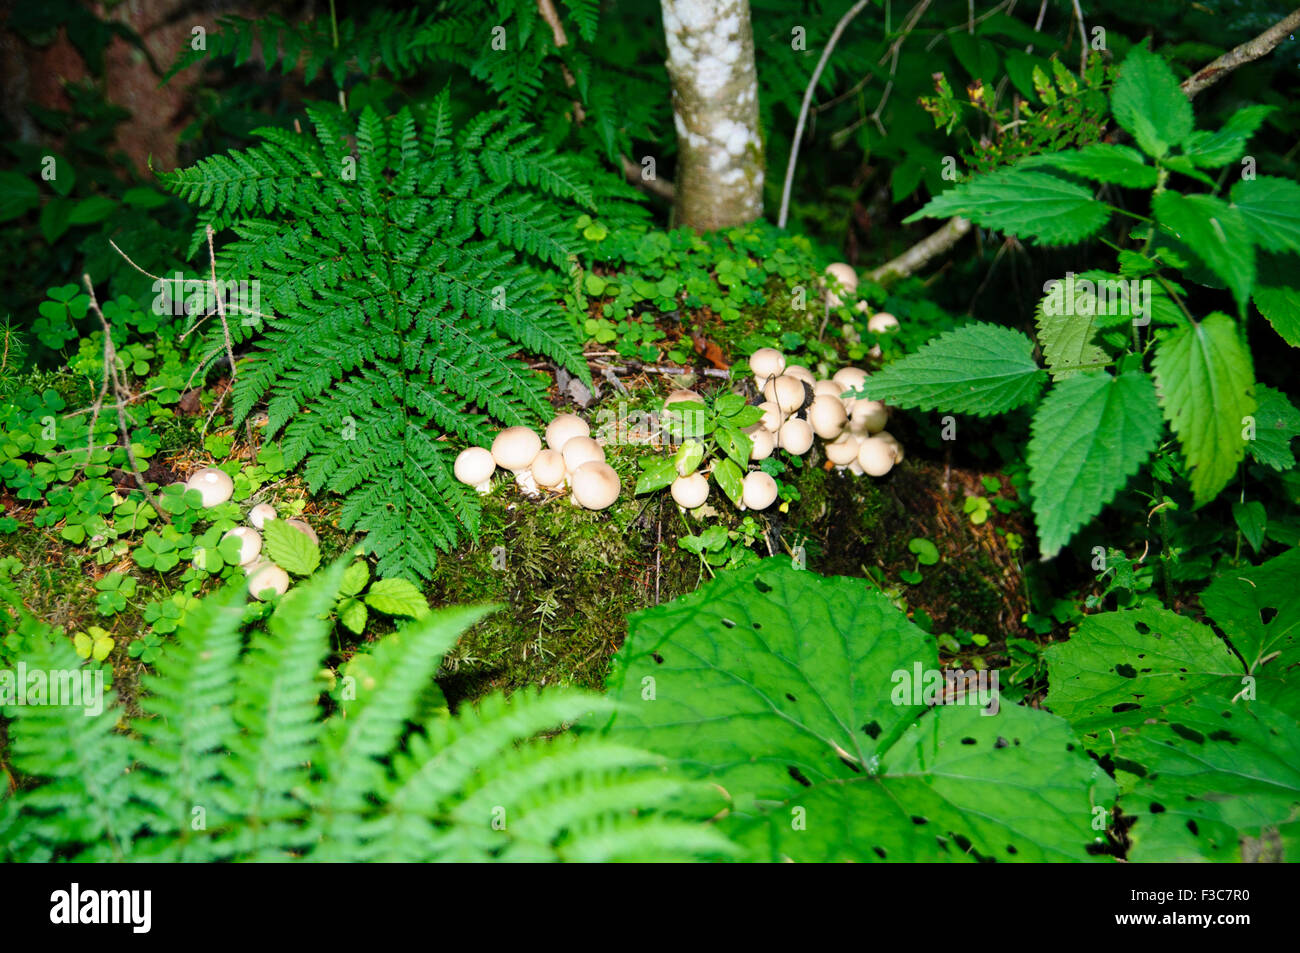 Large group of mushrooms (Agaricus sp) growing on the forest floor, Tirol Austria - Stock Image